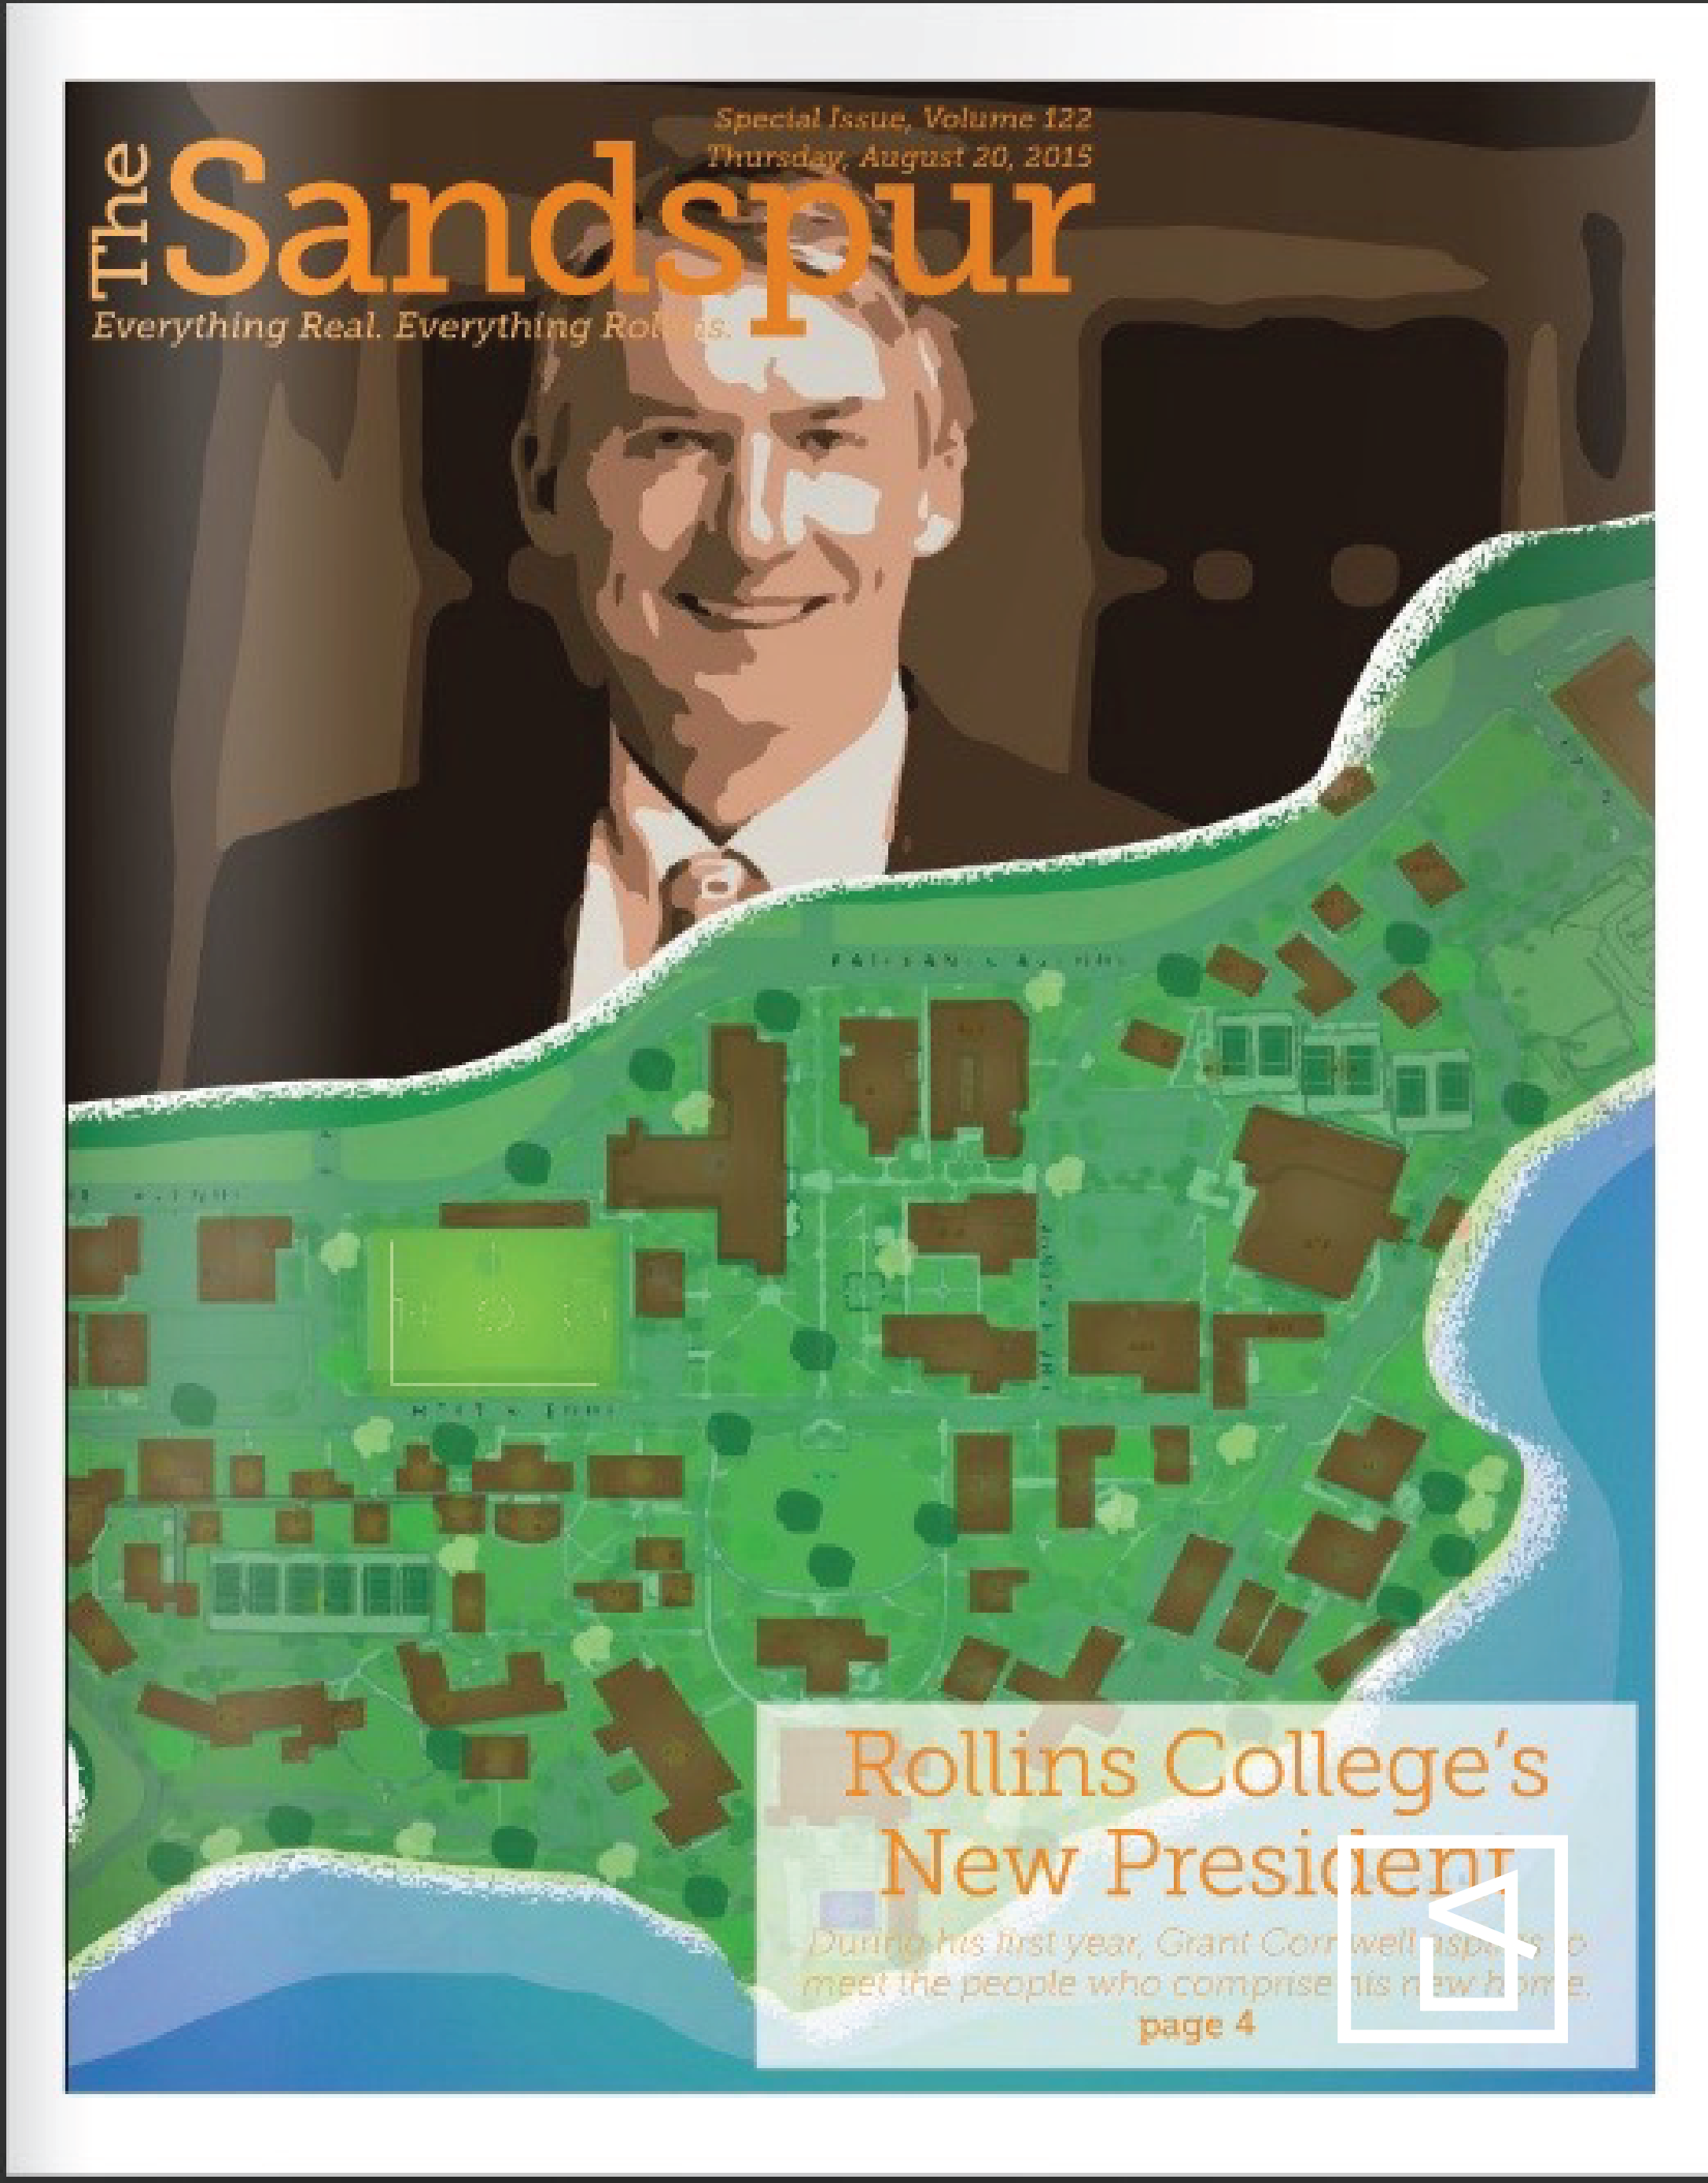 The Sandspur (Campus Newspaper) New President Cover Design